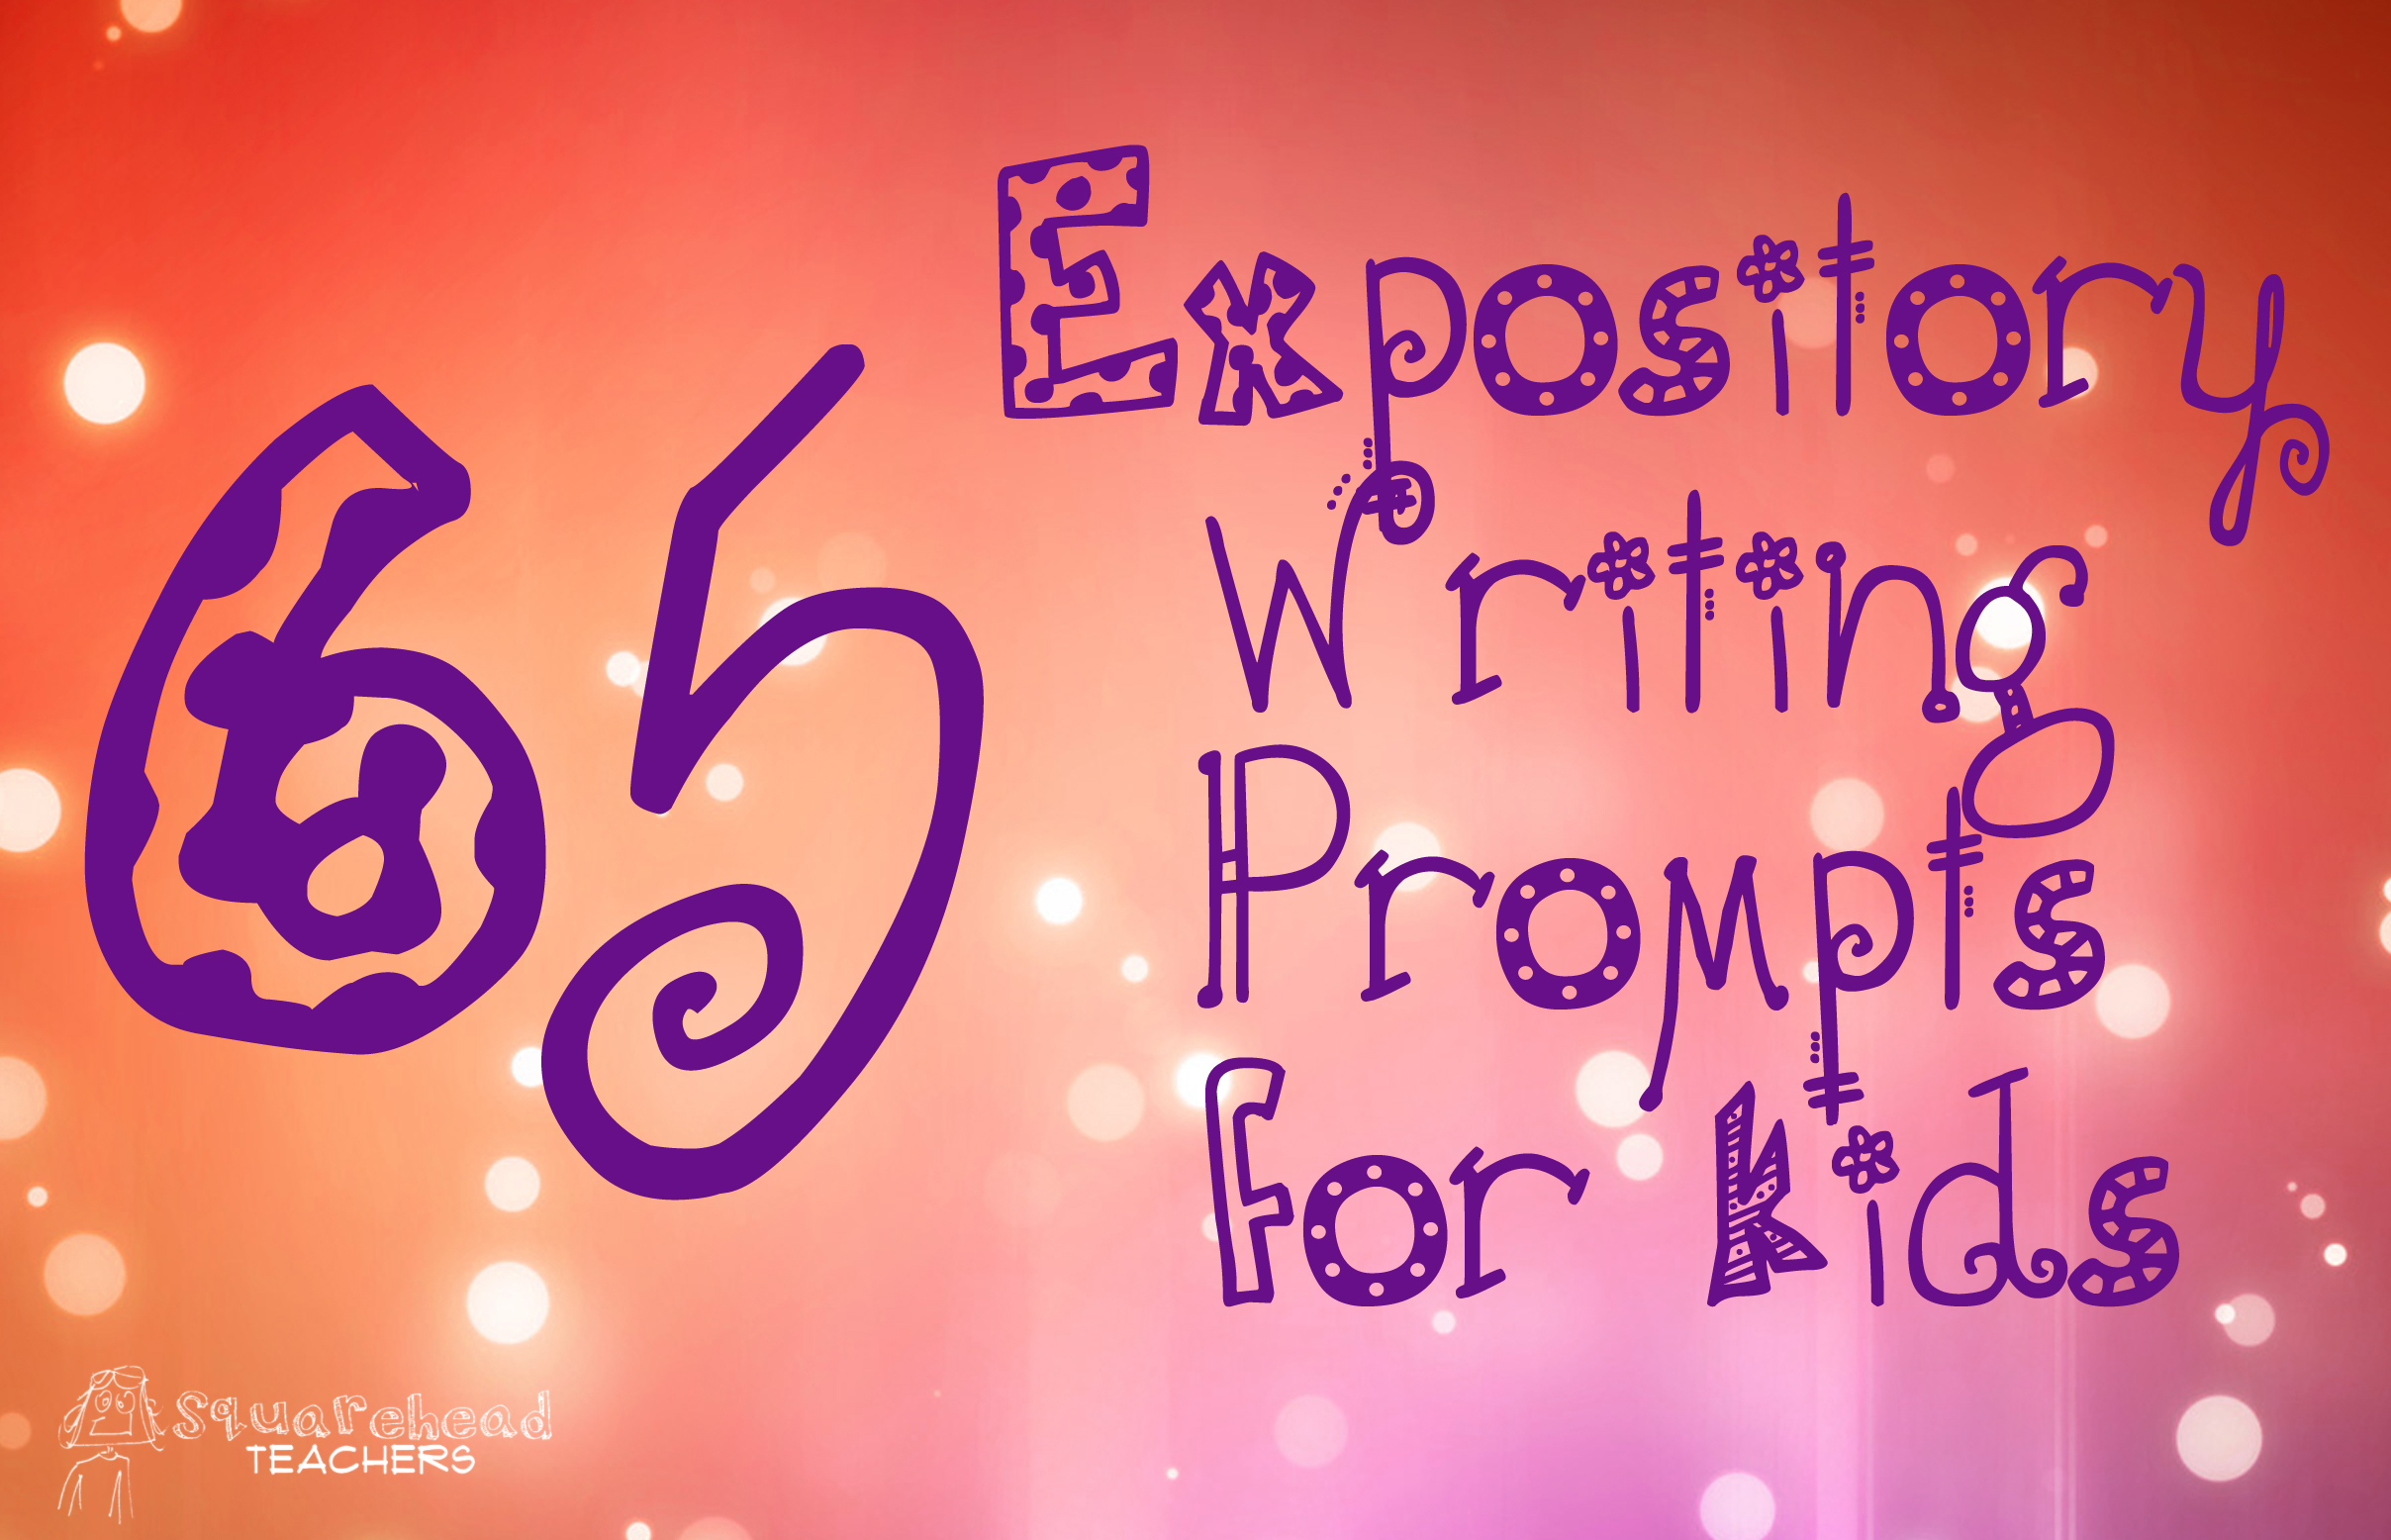 65 Expository Prompts For Kids